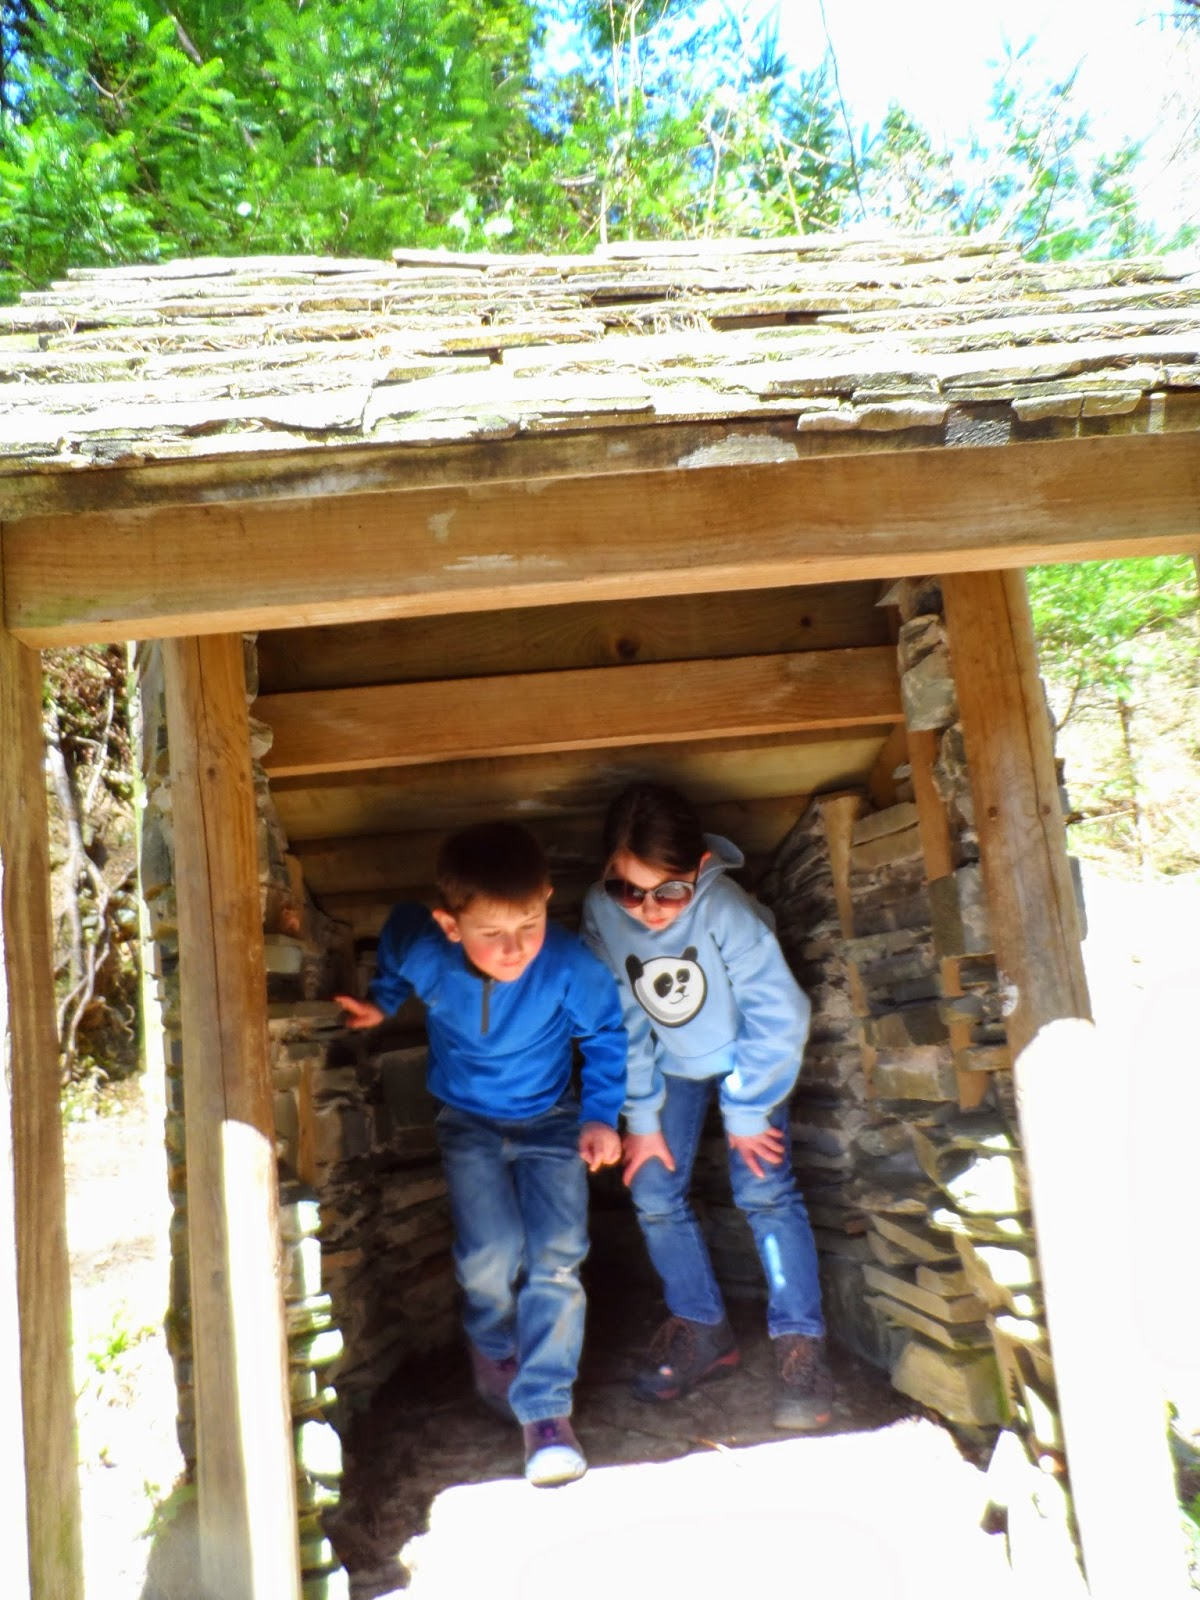 Grizedale Forest Gruffalo trail, nope not in here.